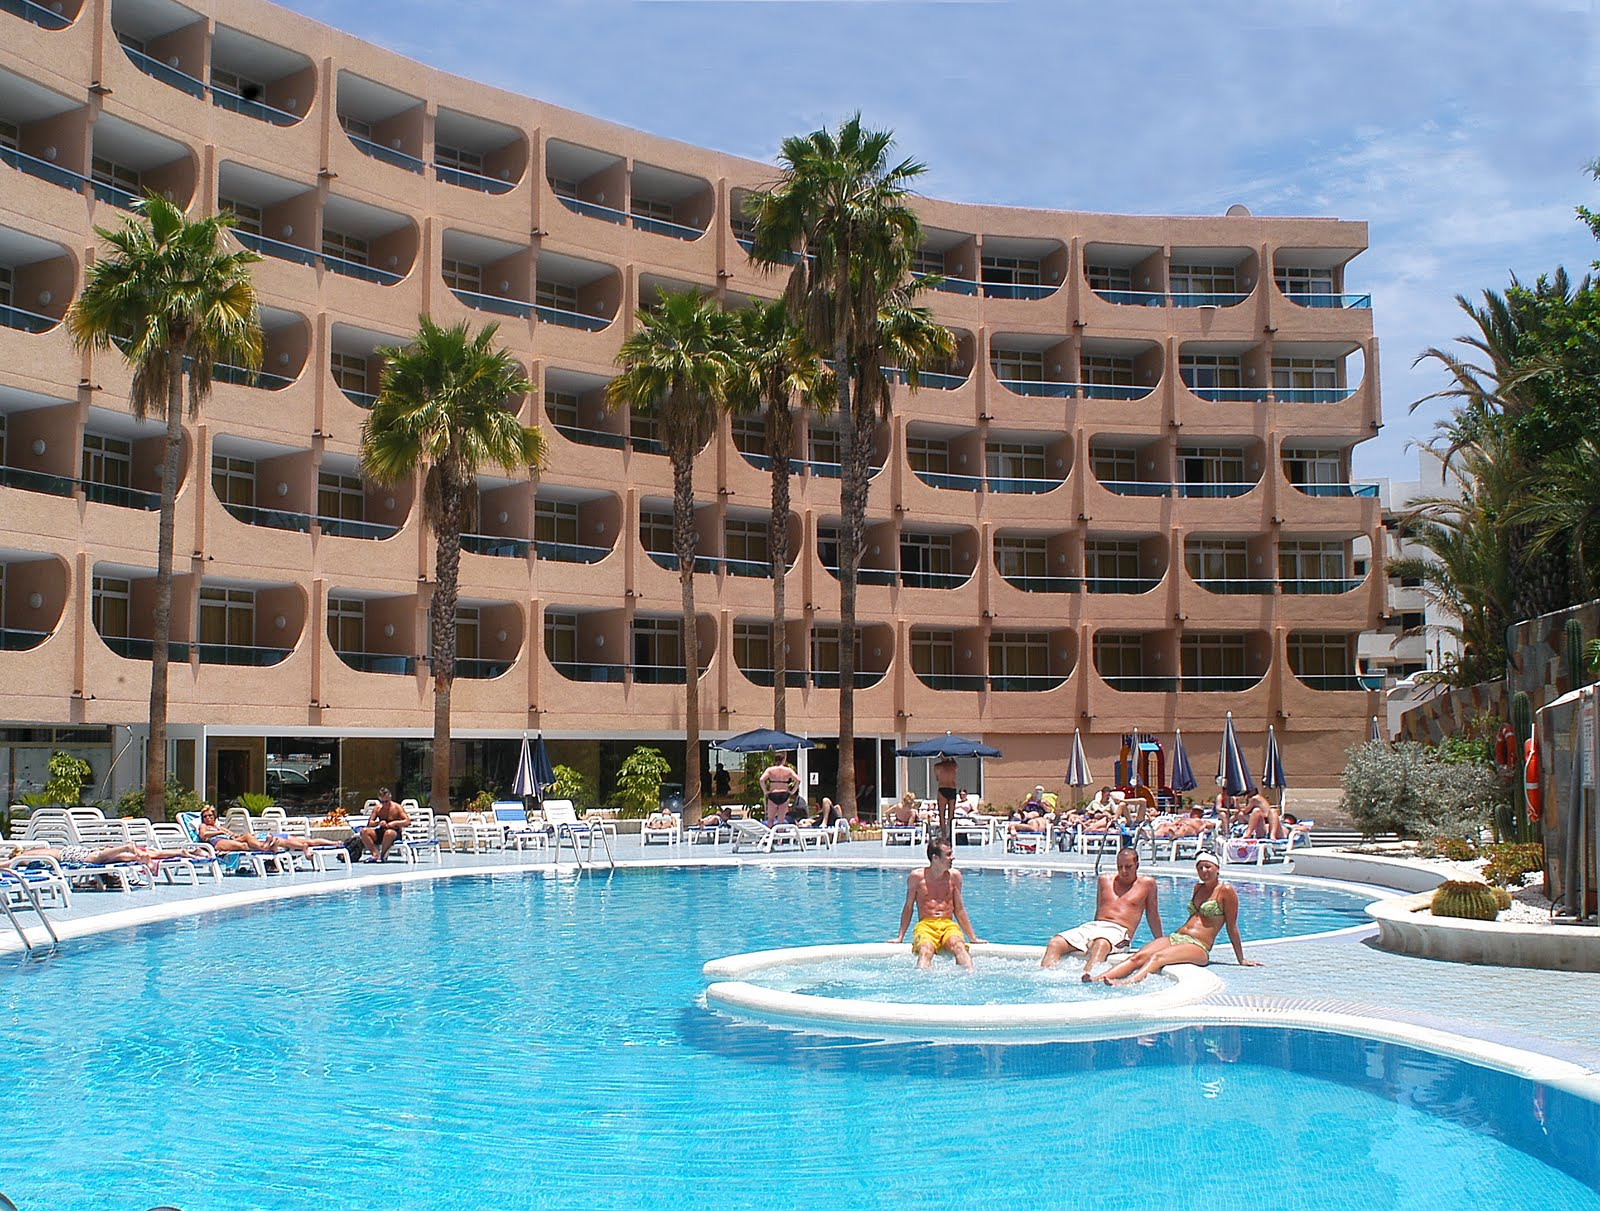 News And Offers From Mur Hotels On Canary Islands Aparthotel Buenos